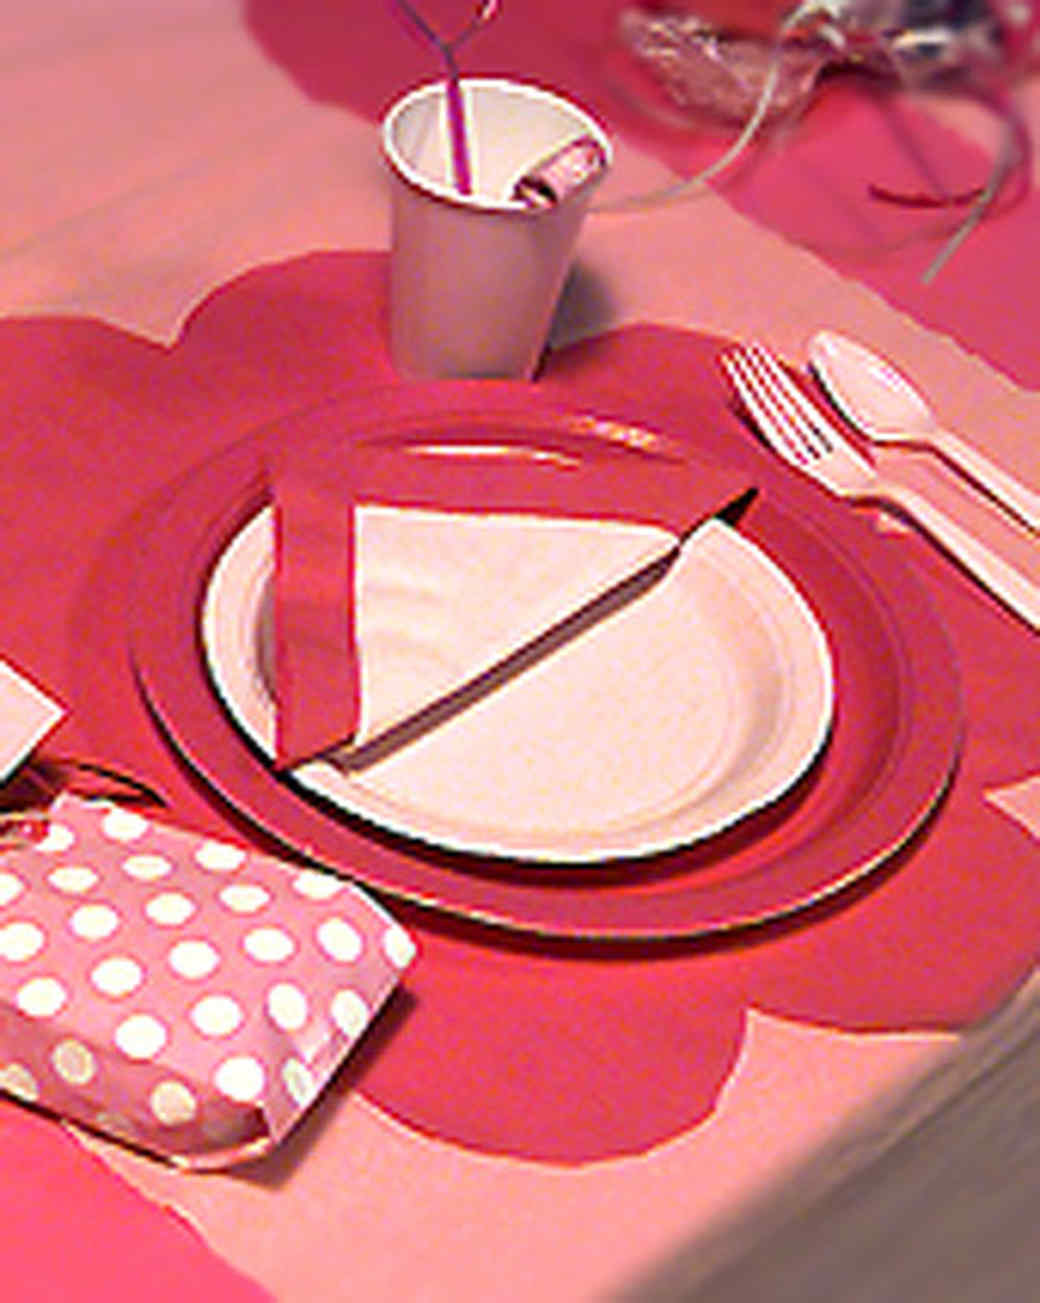 Kids Birthday Party Idea Barbie Party Table Setting & Kids Birthday Party Idea: Barbie Party Table Setting | Martha Stewart